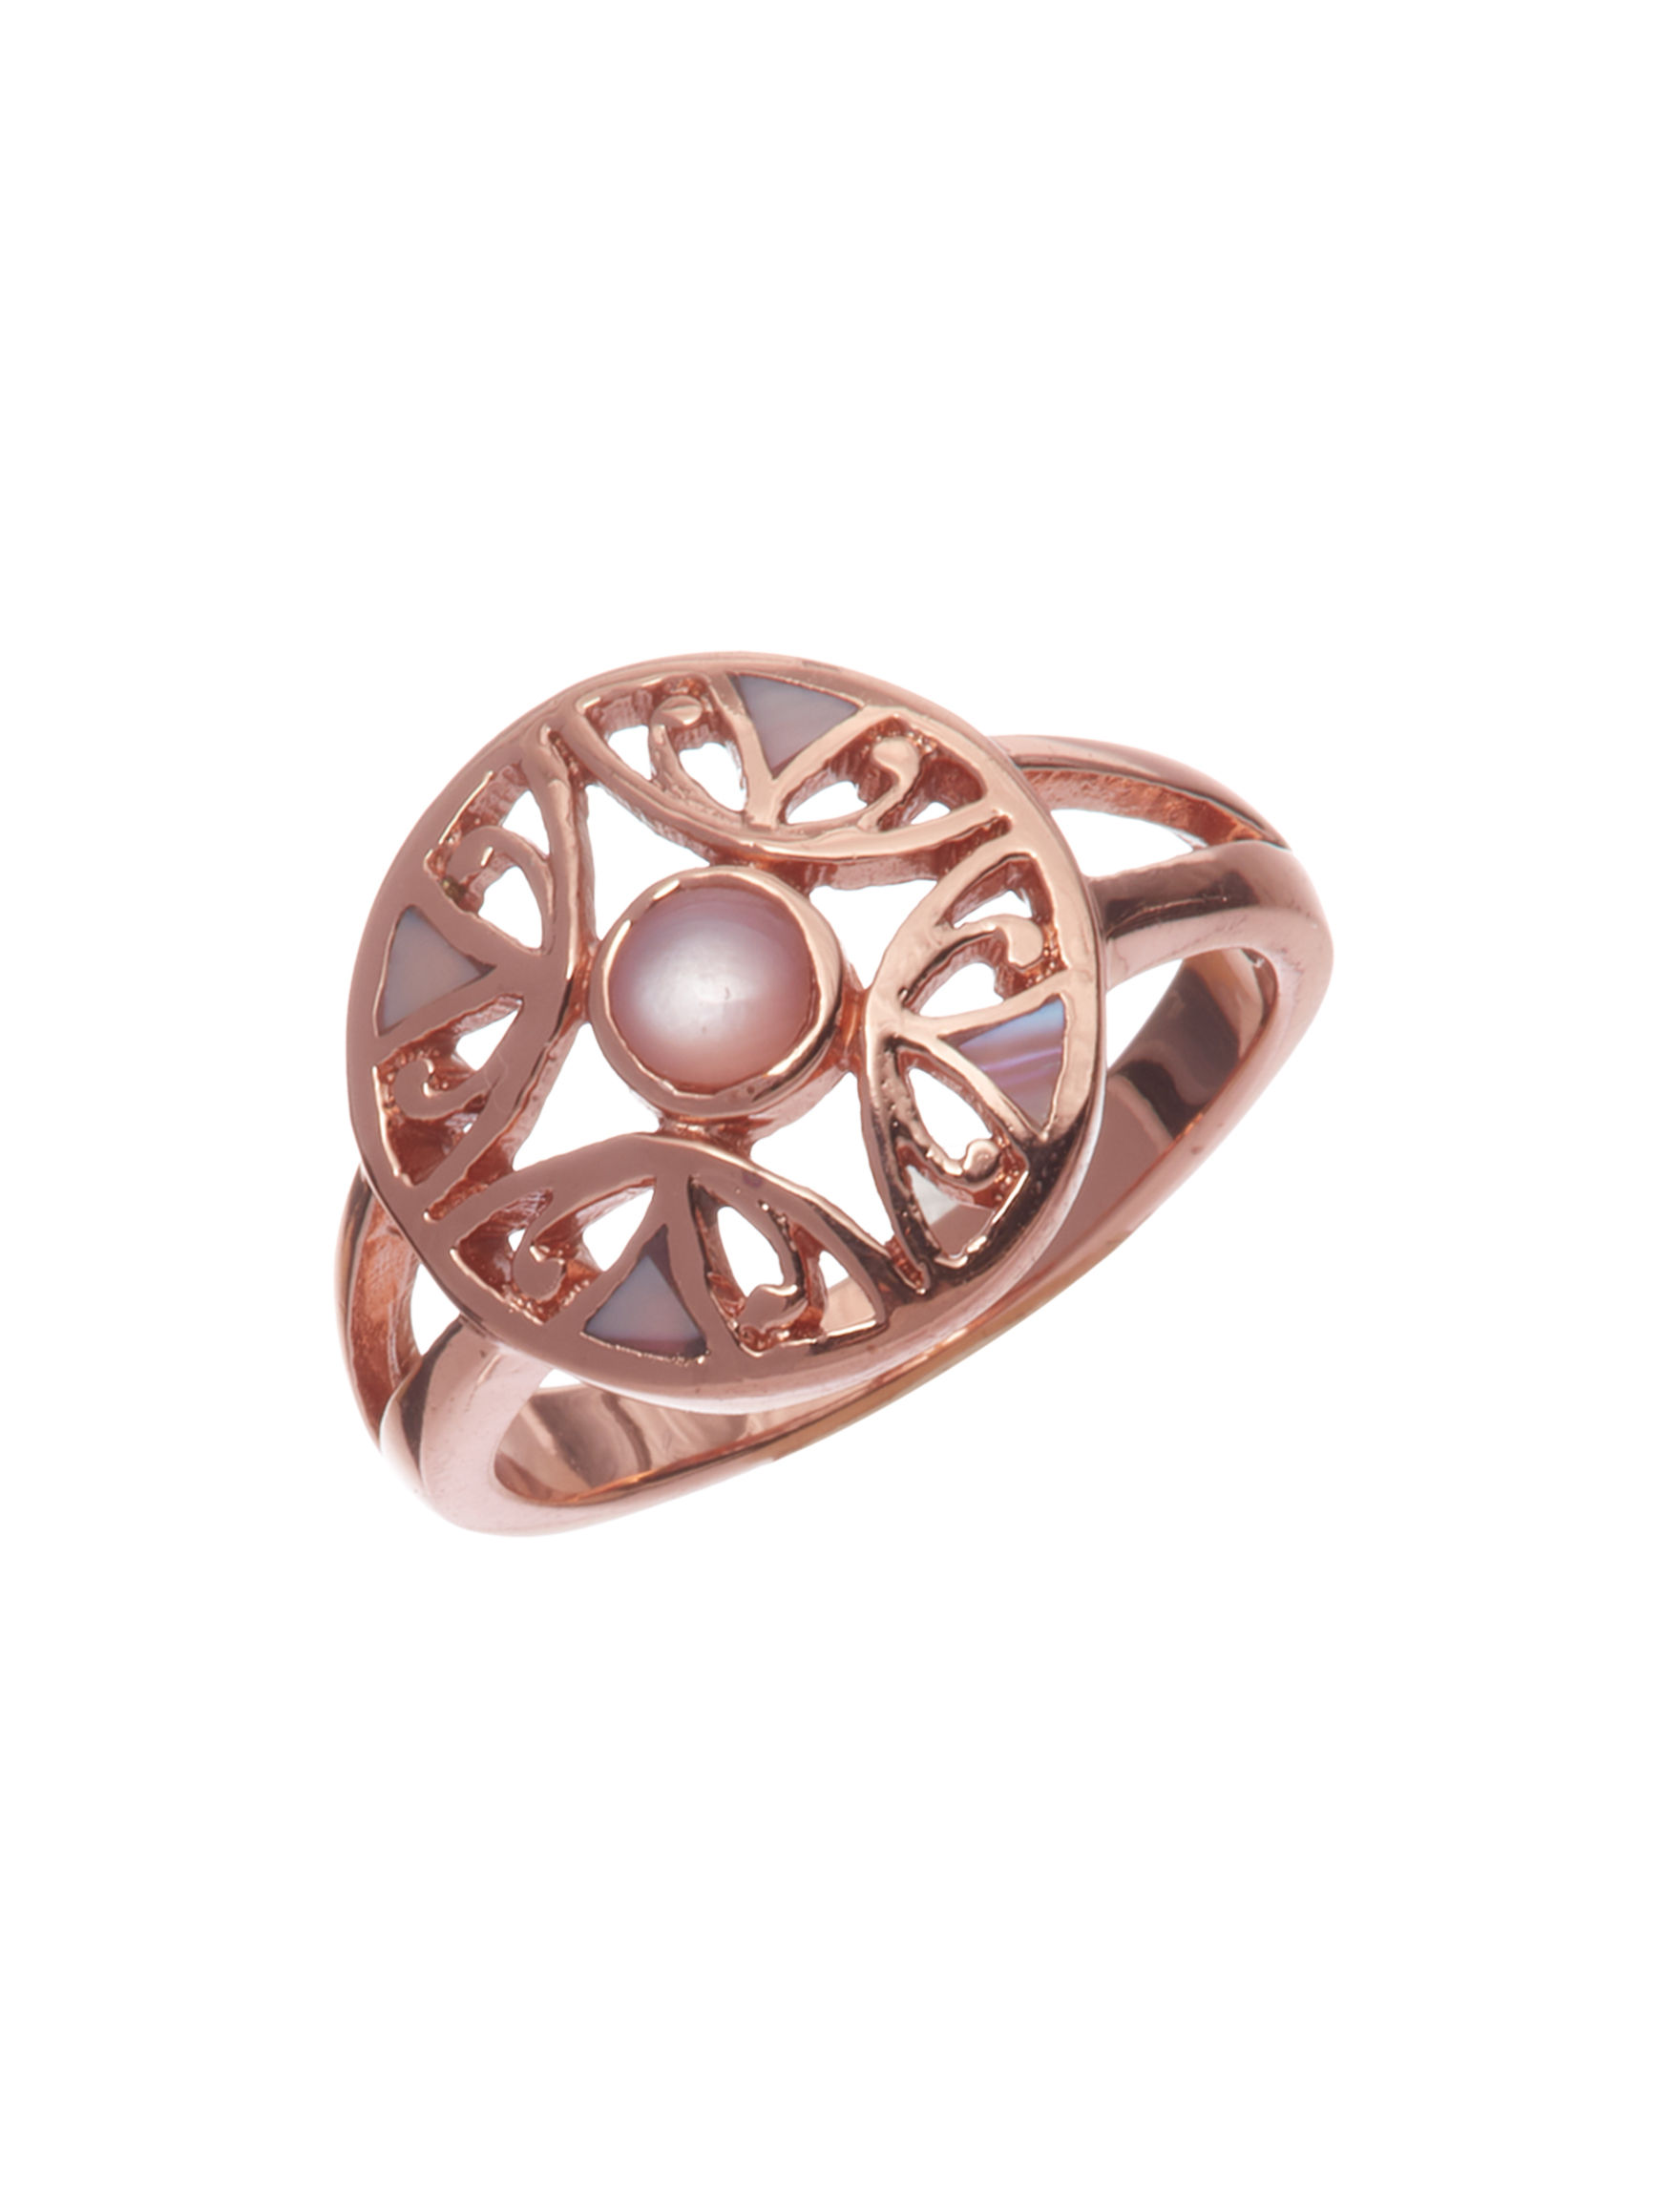 Marsala Rose Gold Rings Fine Jewelry